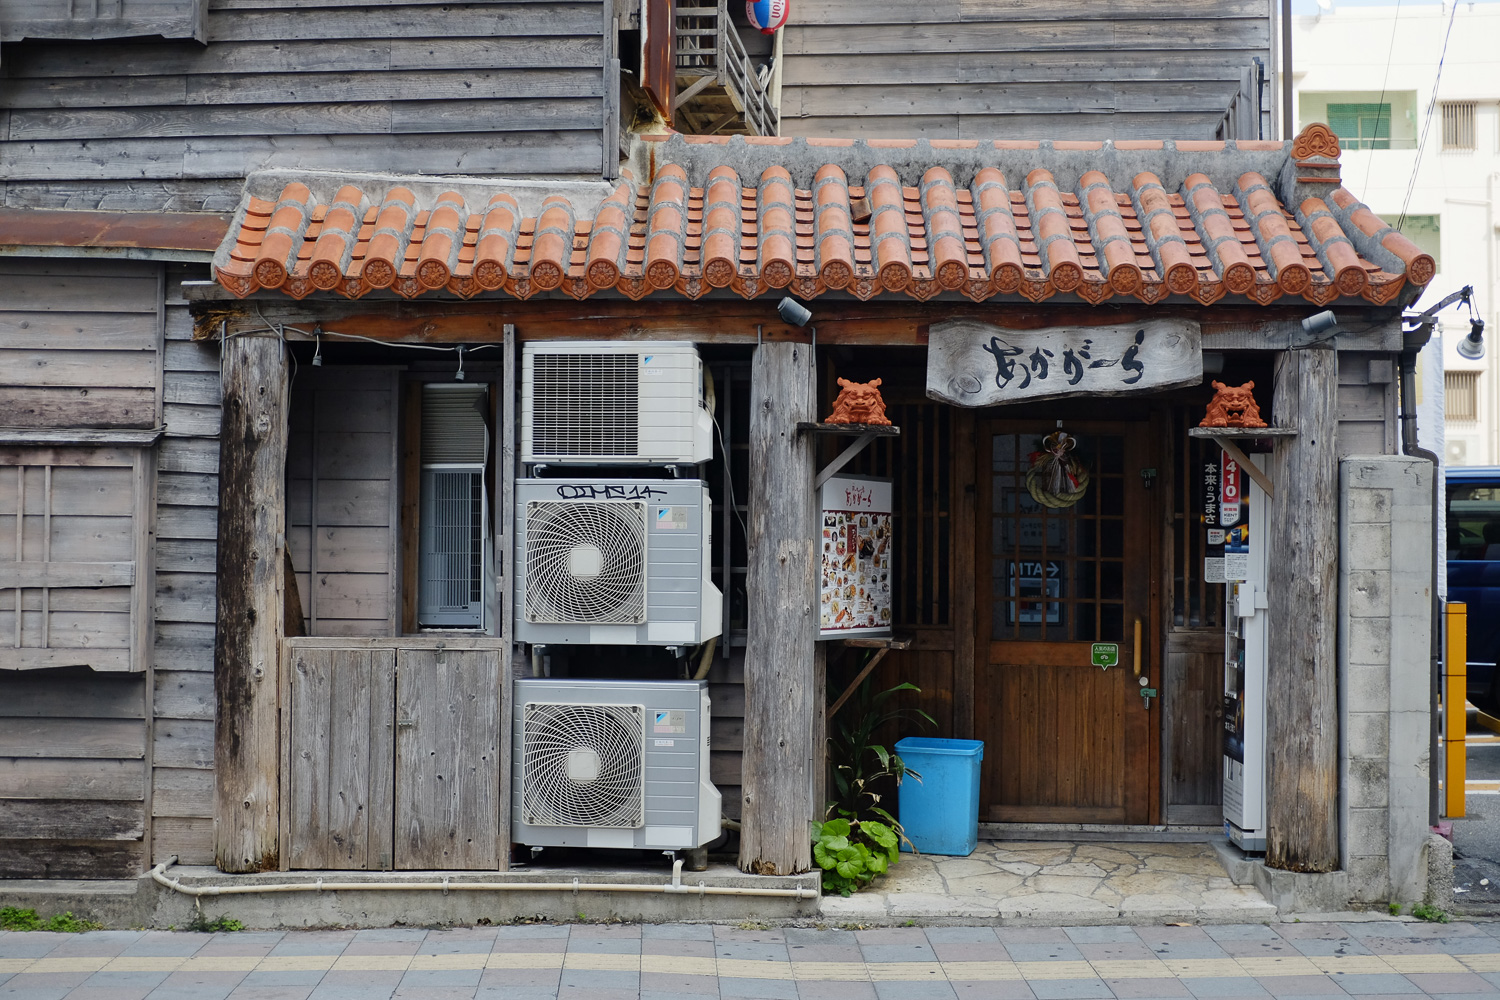 Old and new together in Naha, Okinawa, Japan. Fuji x100s w/ TCLx100 Teleconverter at ISO 800, f2.8, 1/200 sec.